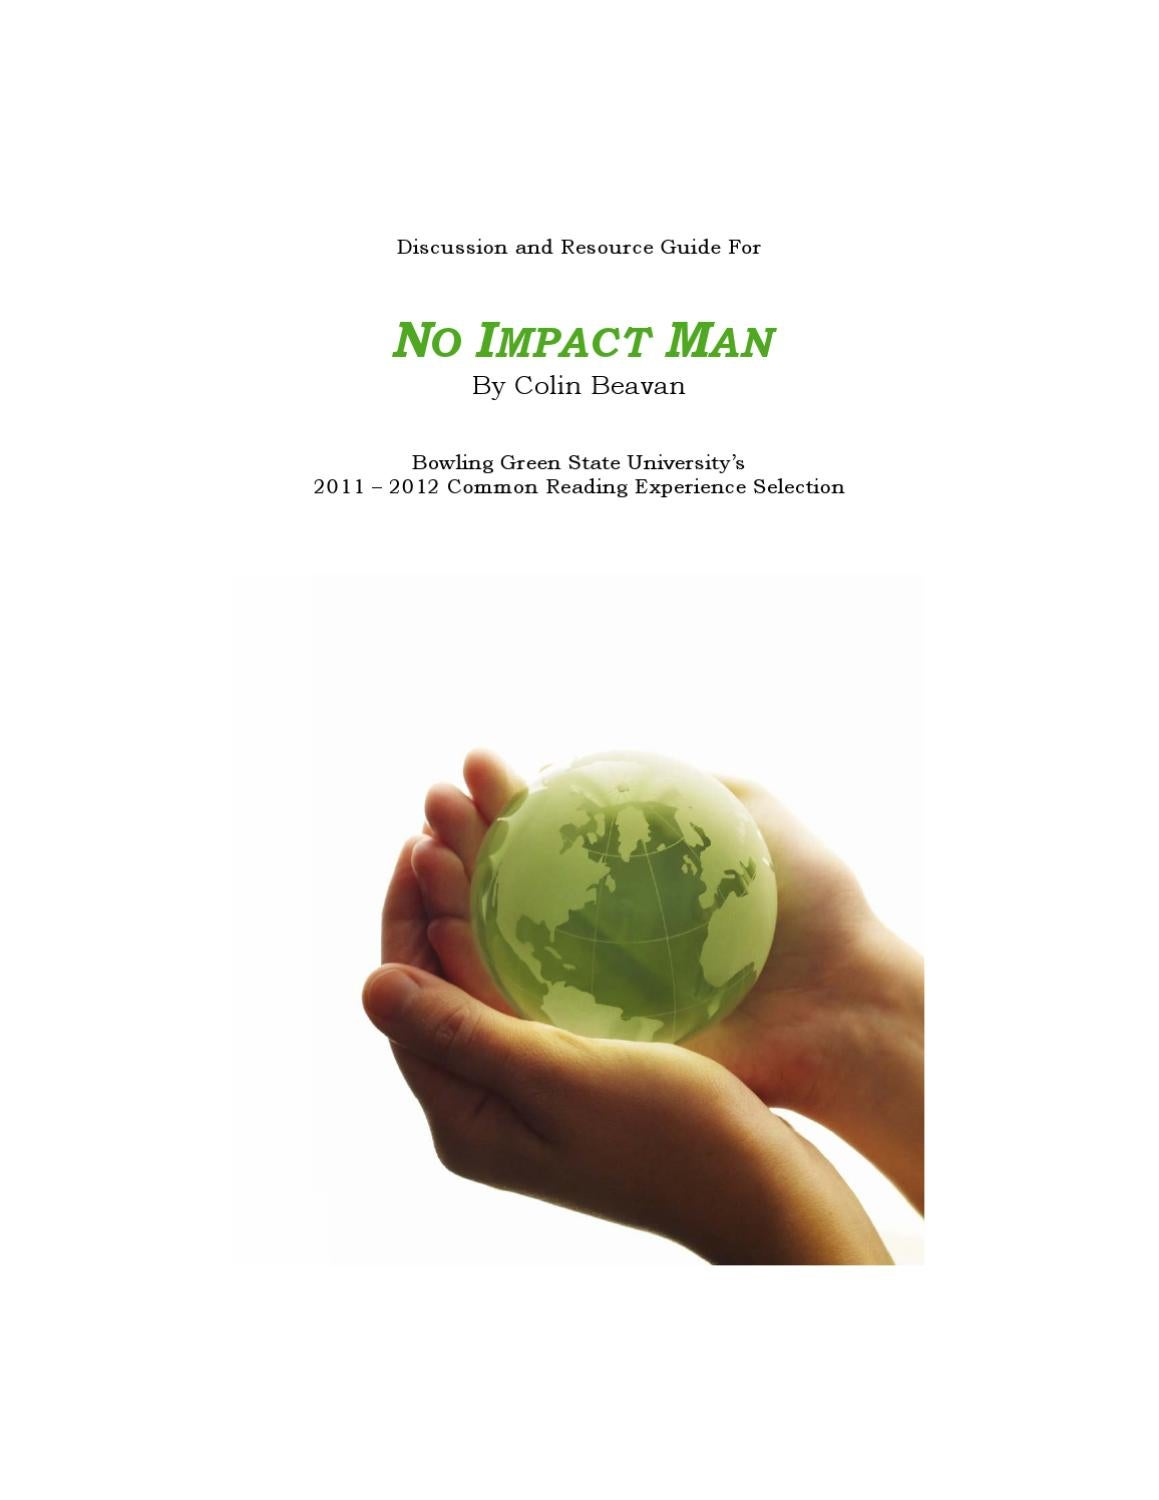 discussion and resource guide for no impact man by bgsu